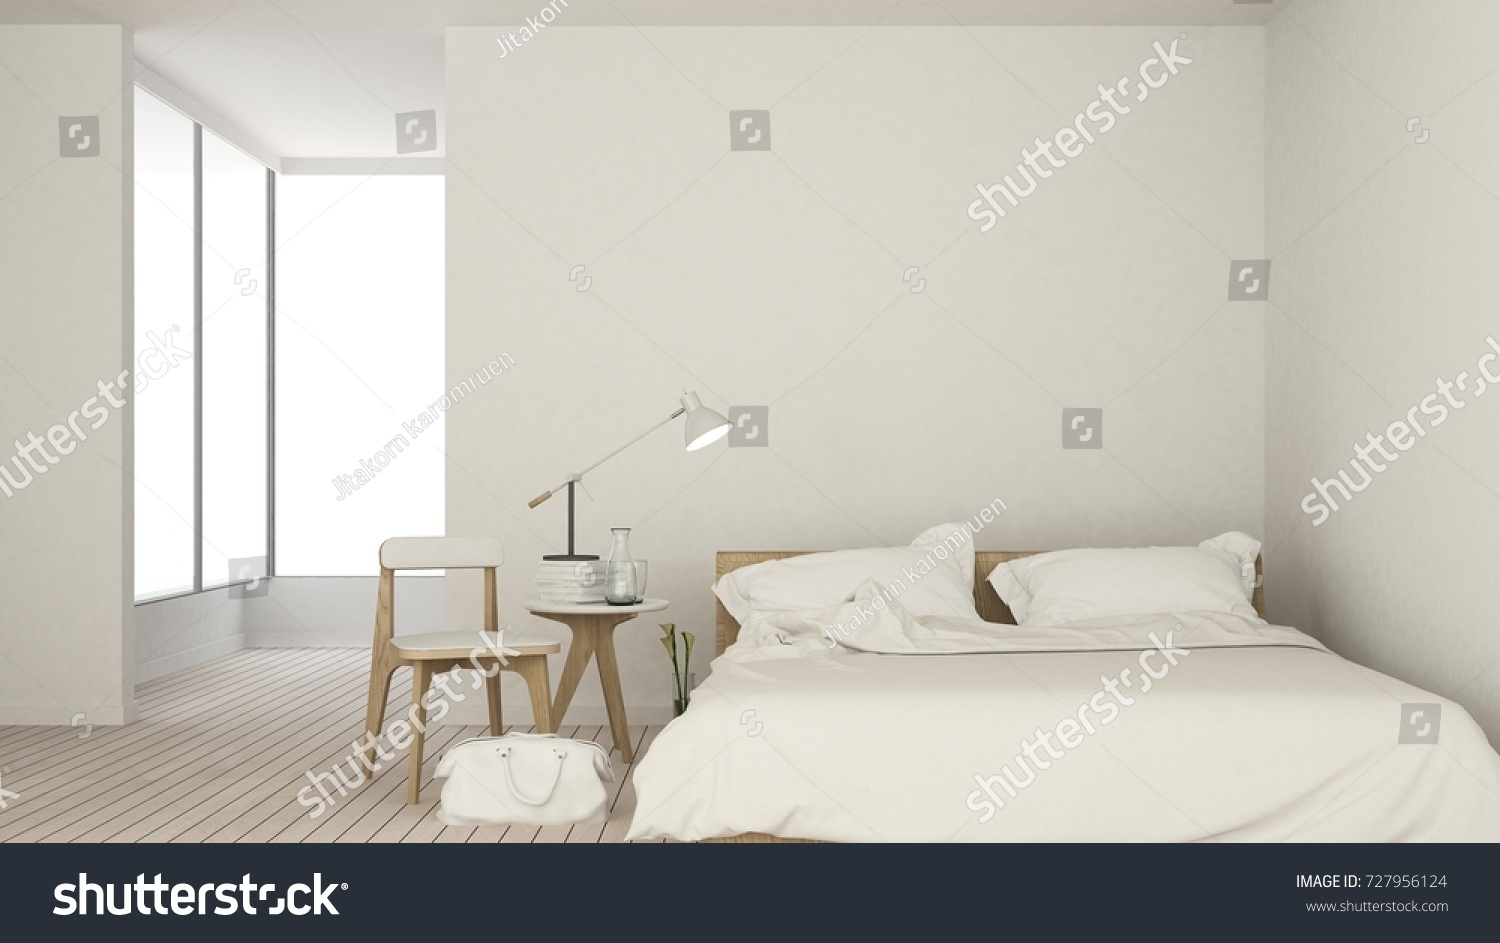 Bedroom space interior minimal and wall decoration empty in apartment  3D  rendering. Bedroom Space Interior Minimal Wall Decoration Stock Illustration